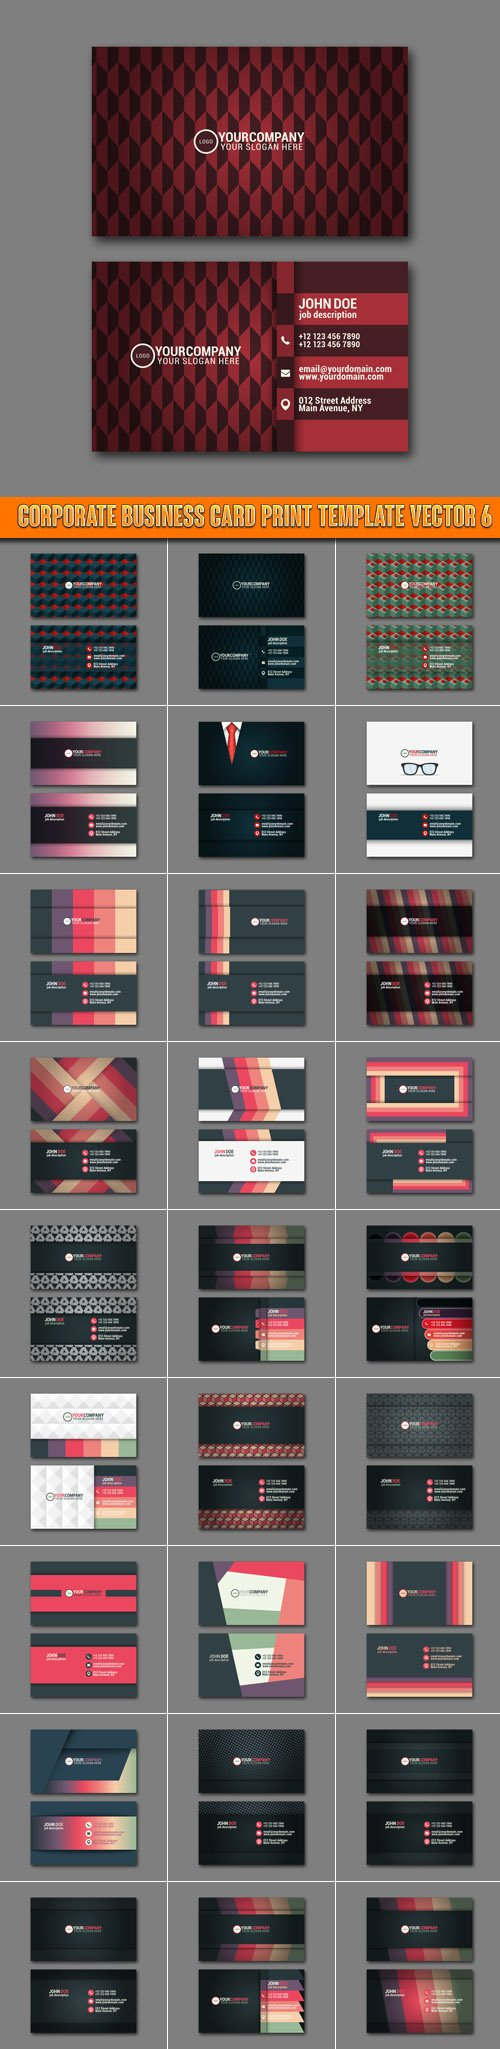 Corporate business card print template vector 6